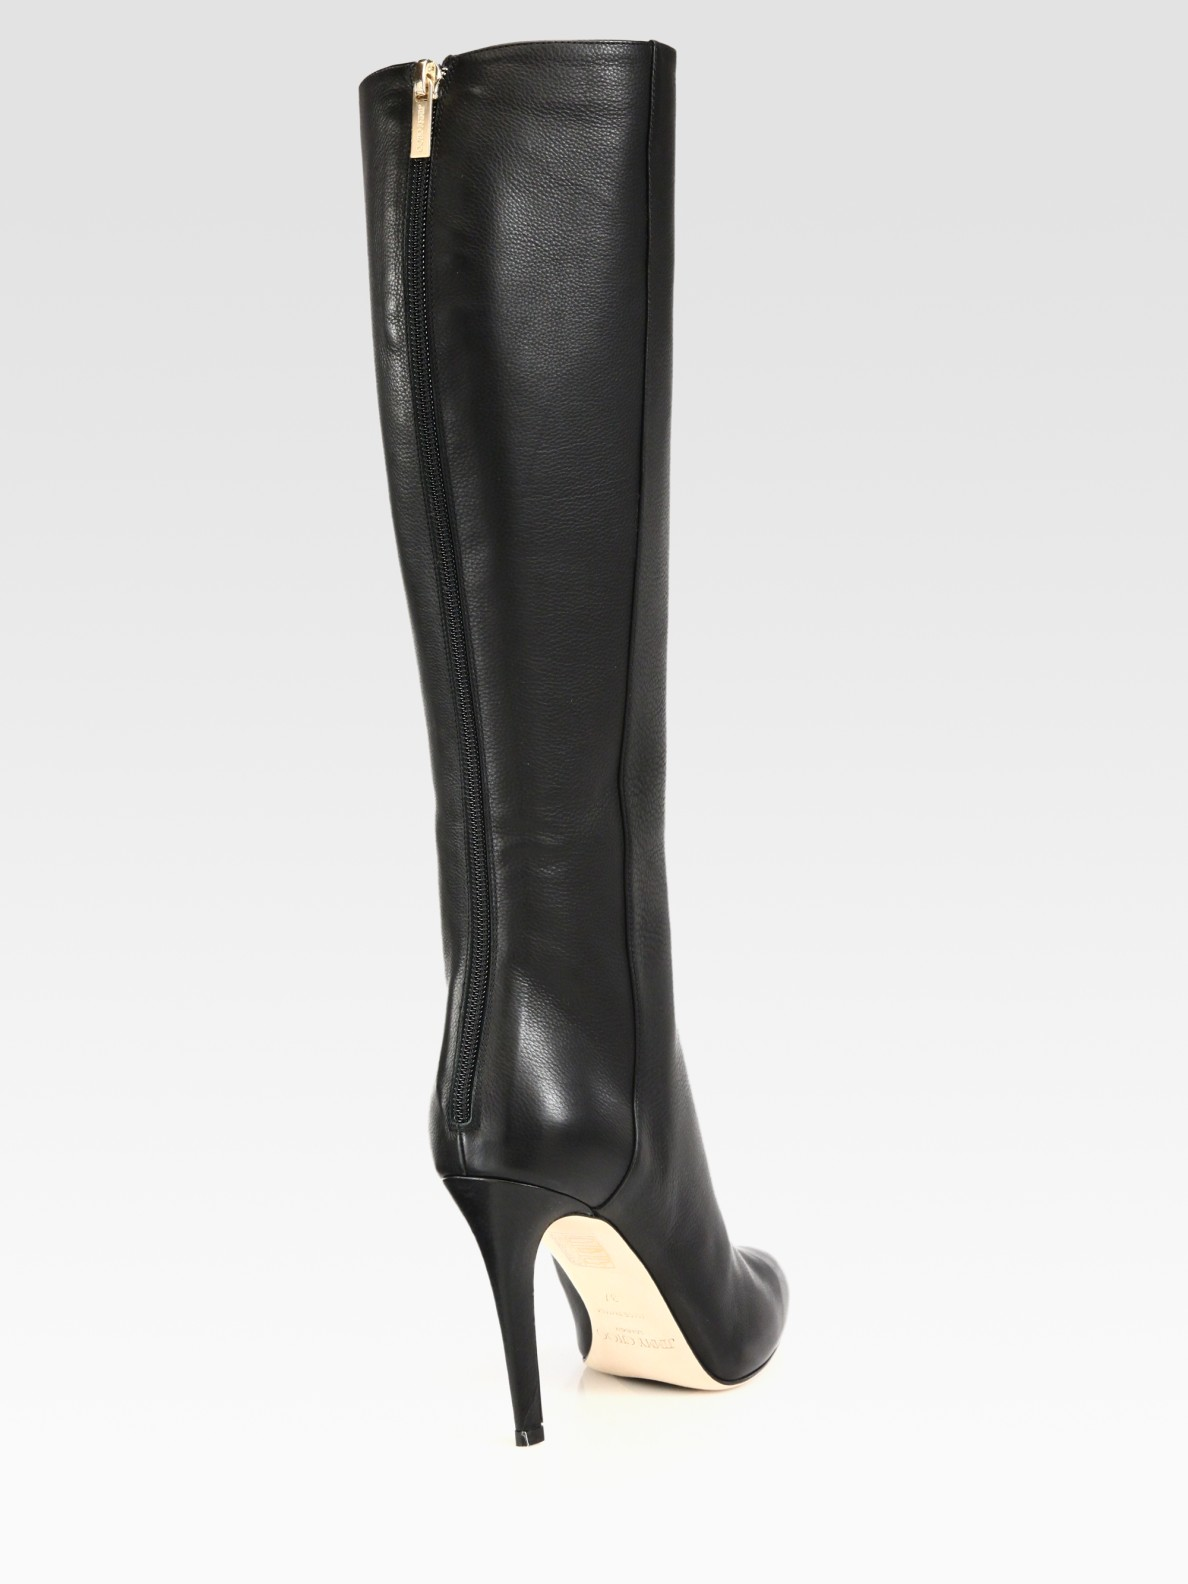 Jimmy choo Glory Leather Knee High Boots in Black | Lyst